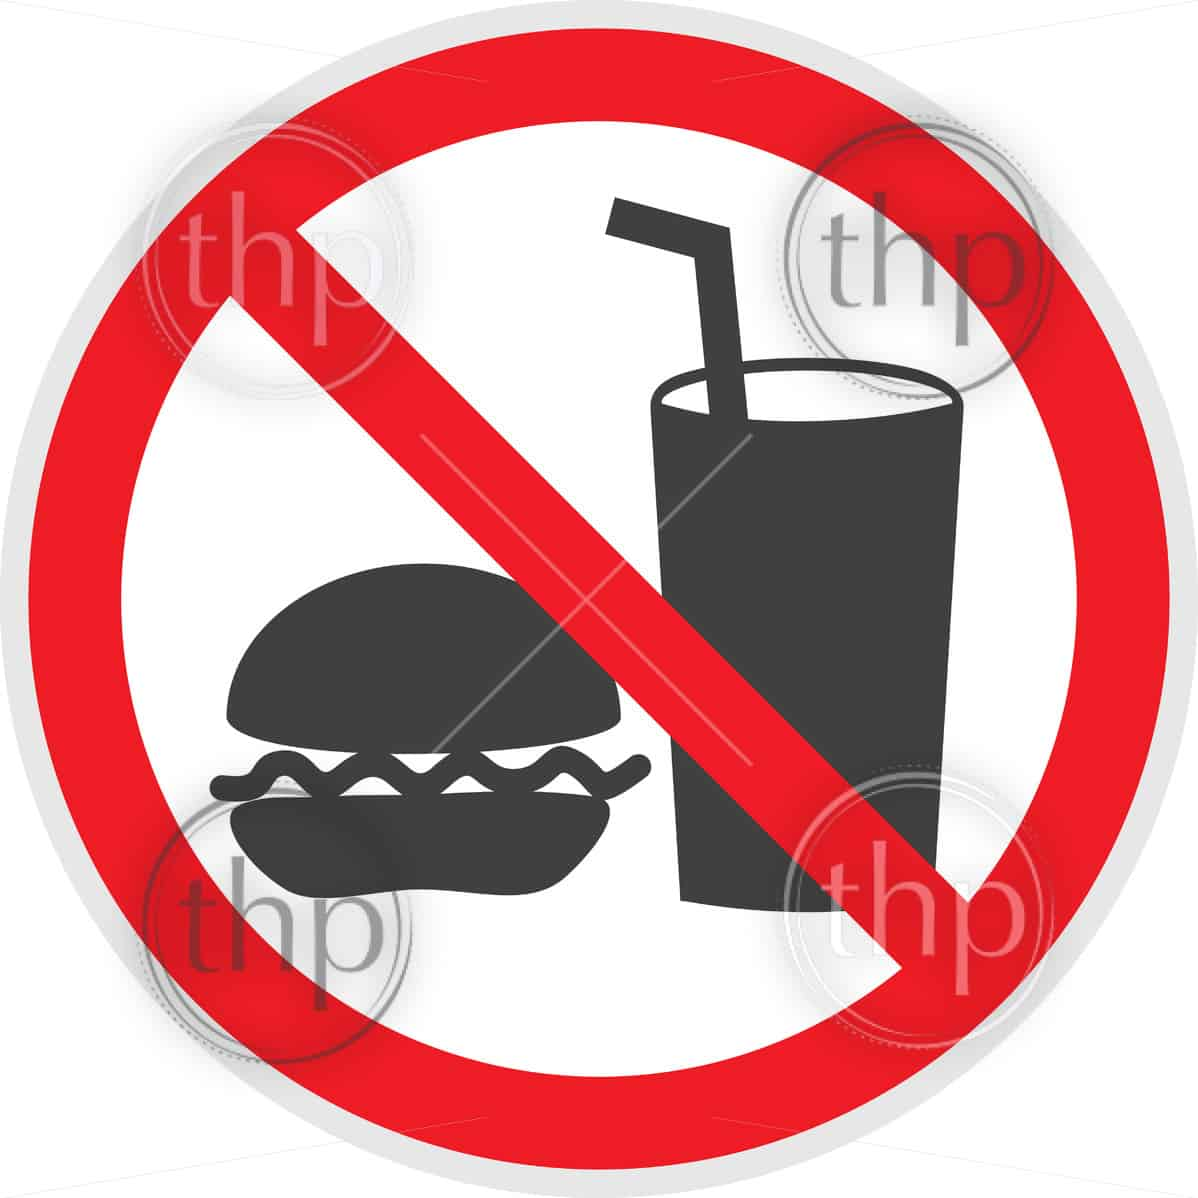 No food or drink sign in vector depicting banned activities